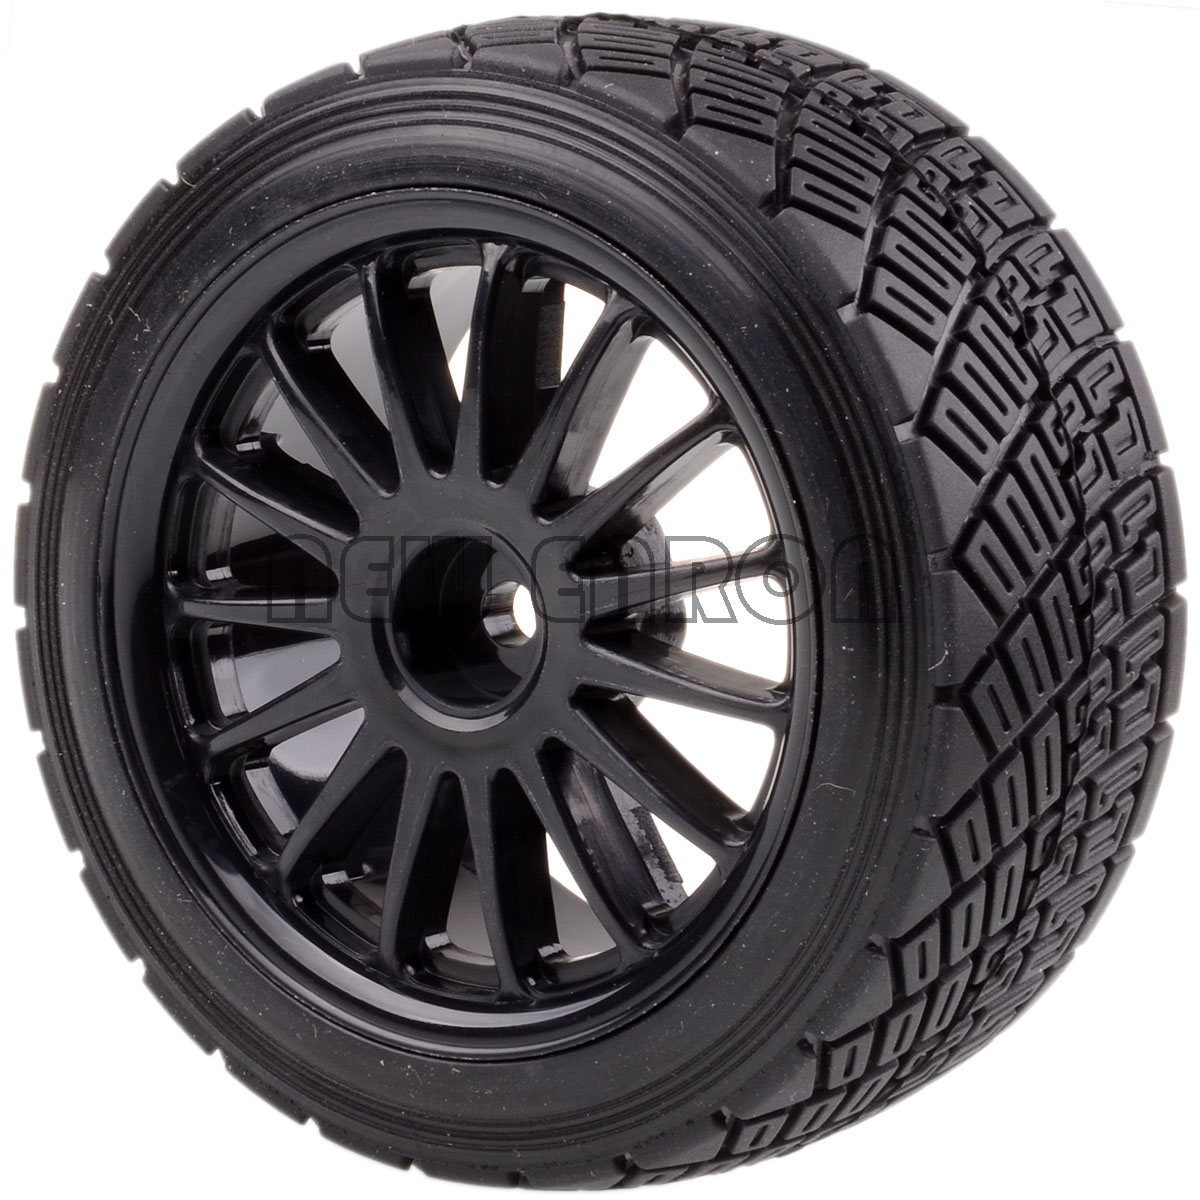 """Image 5 - NEW ENRON RC CAR PART RC 1/10 RC TIRES 4PCS 2.2"""" WHEEL Rim & Tires Tyre Fit 1/10 HPI WR8 Flux Rally 3.0 110697 94177-in Parts & Accessories from Toys & Hobbies"""